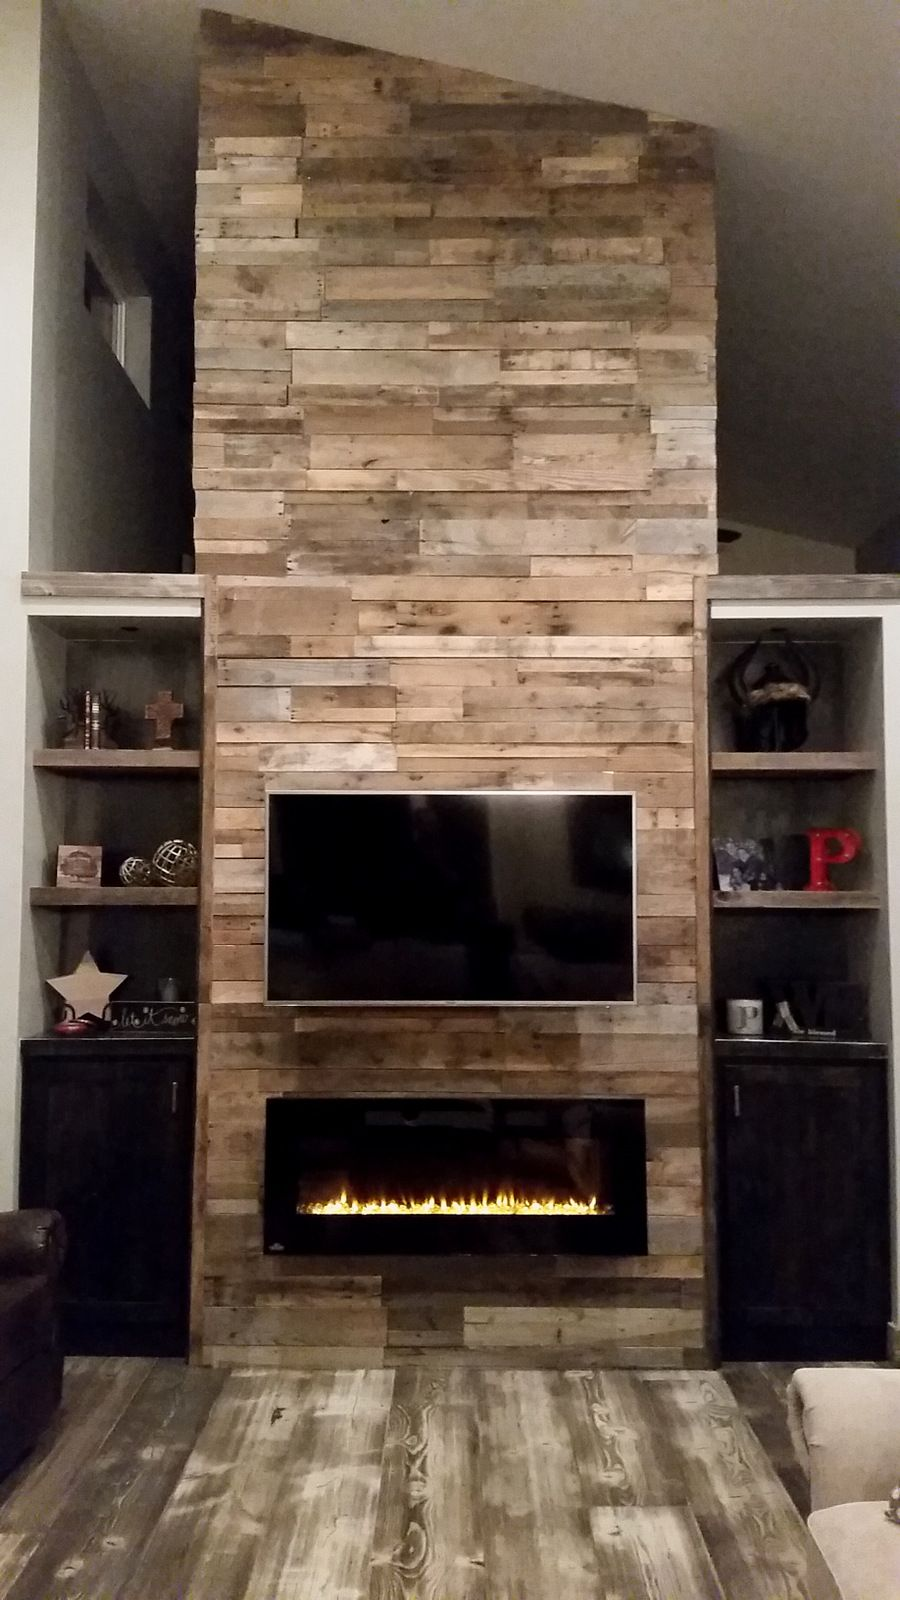 Pallet Wood Fireplace Reclaimed Wood Fireplace Rustic Fireplace Mantels Wood Fireplace